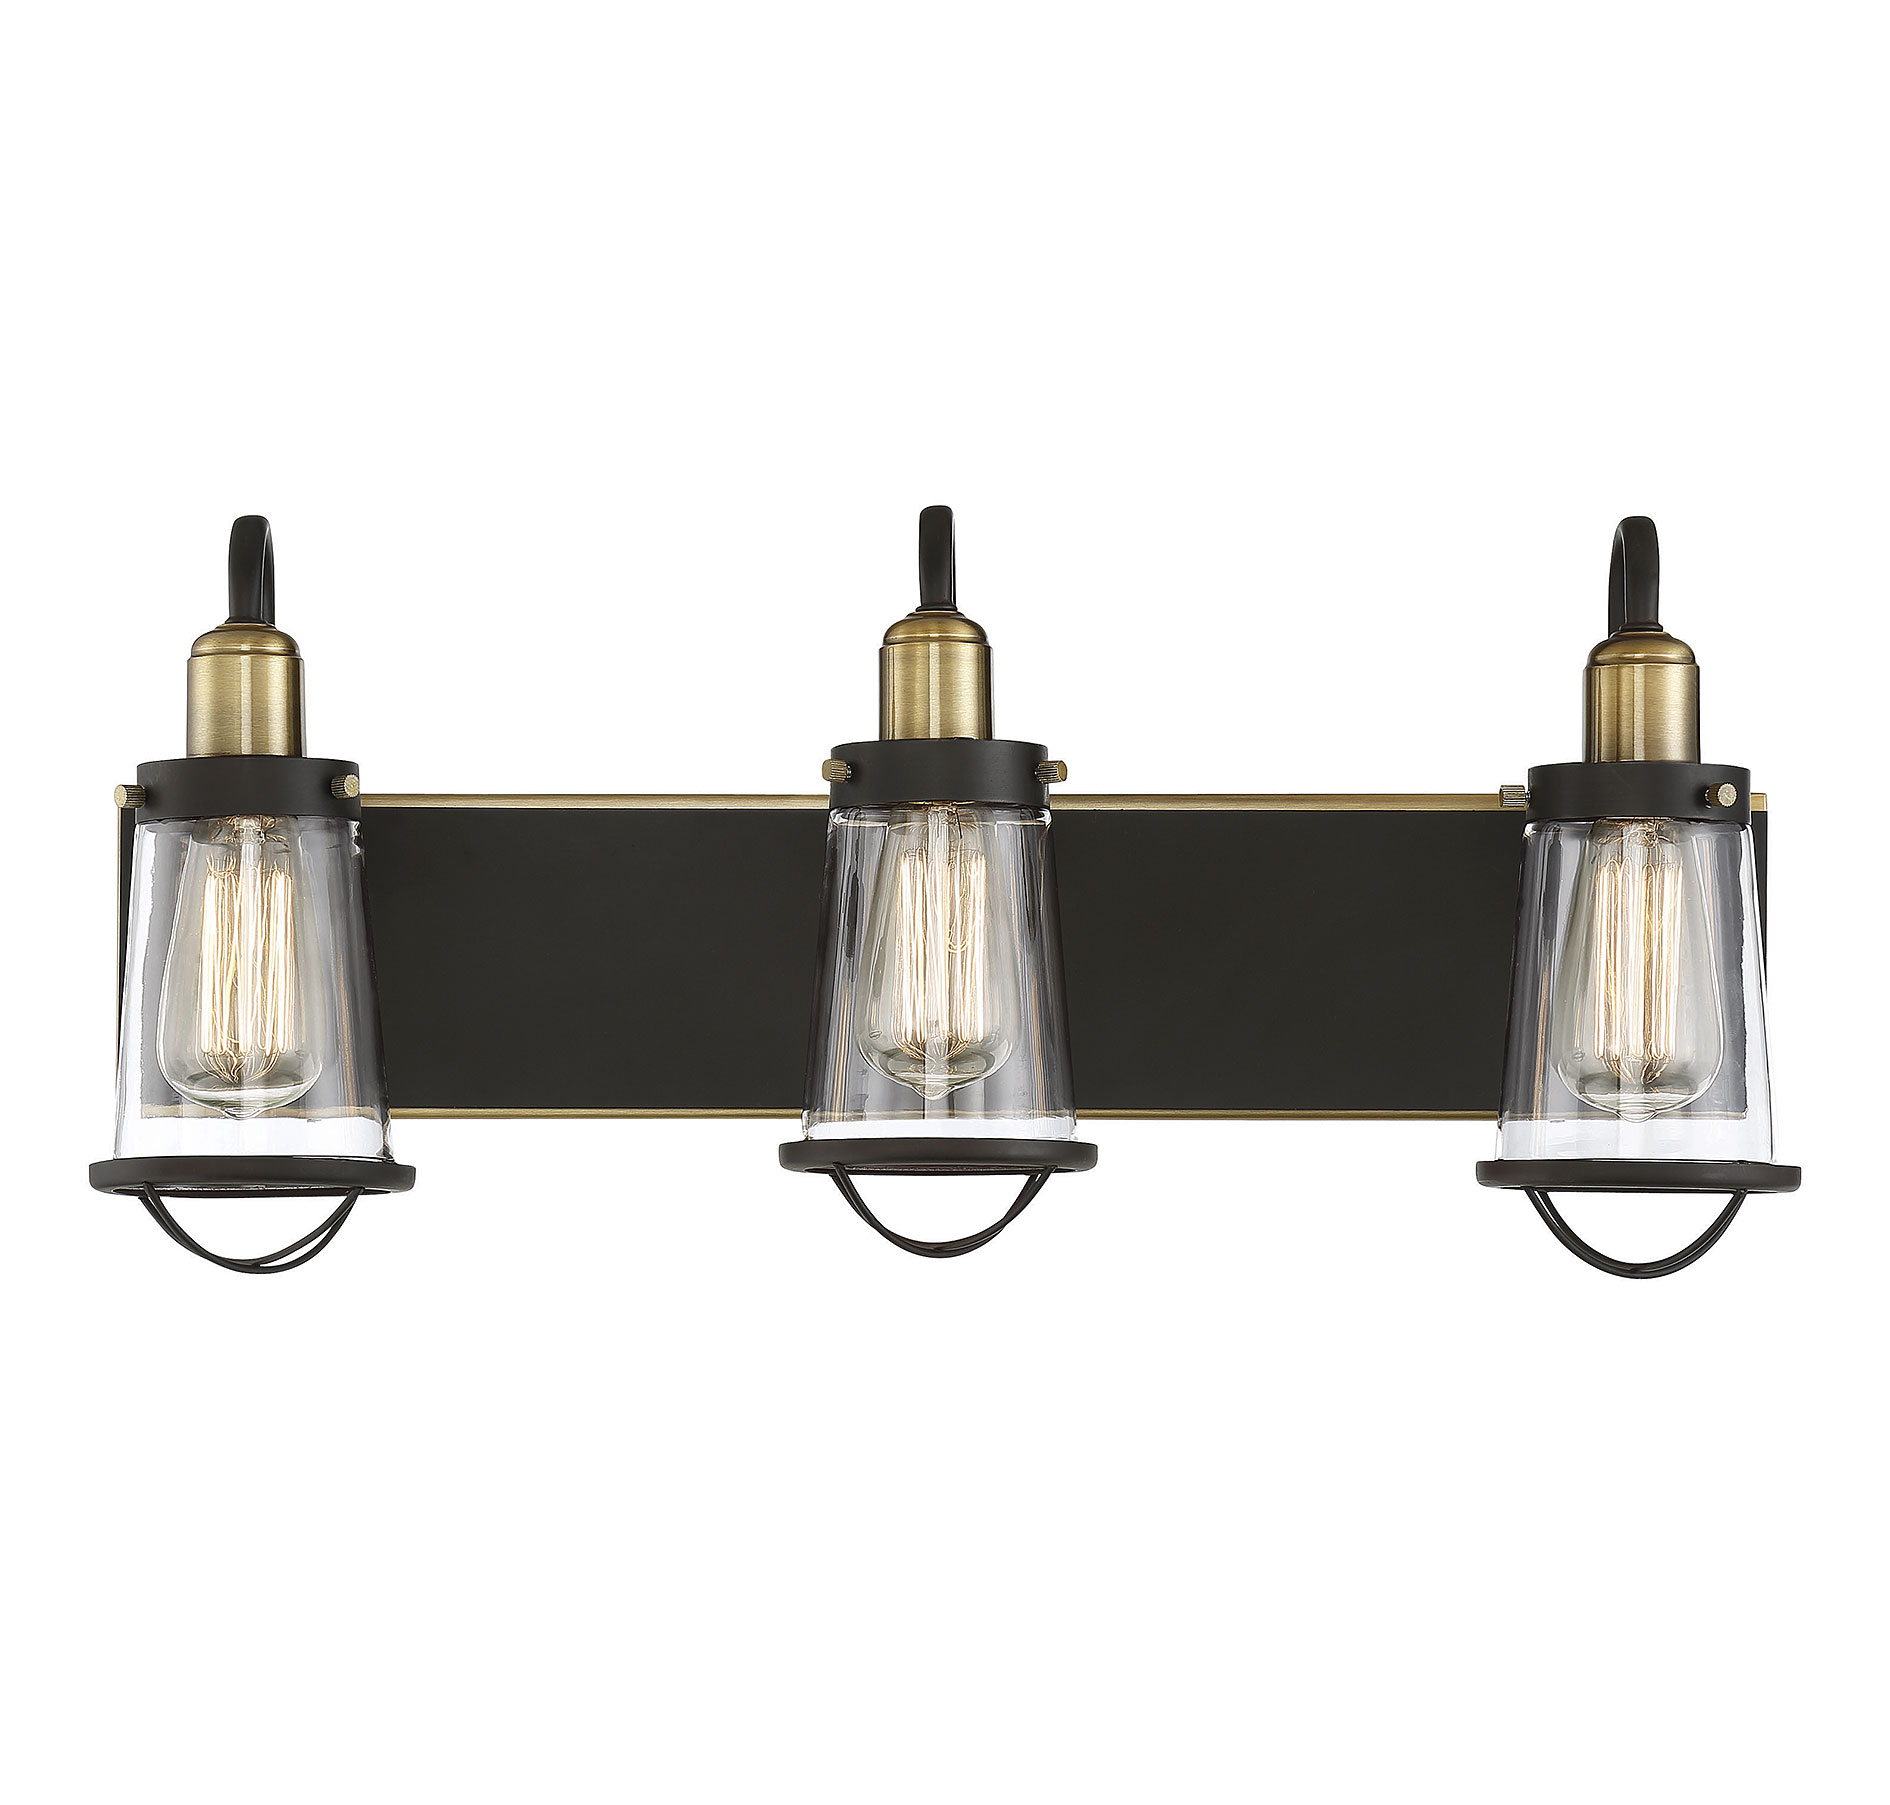 Lansing Bathroom Vanity Light By Savoy House - Savoy bathroom light fixtures